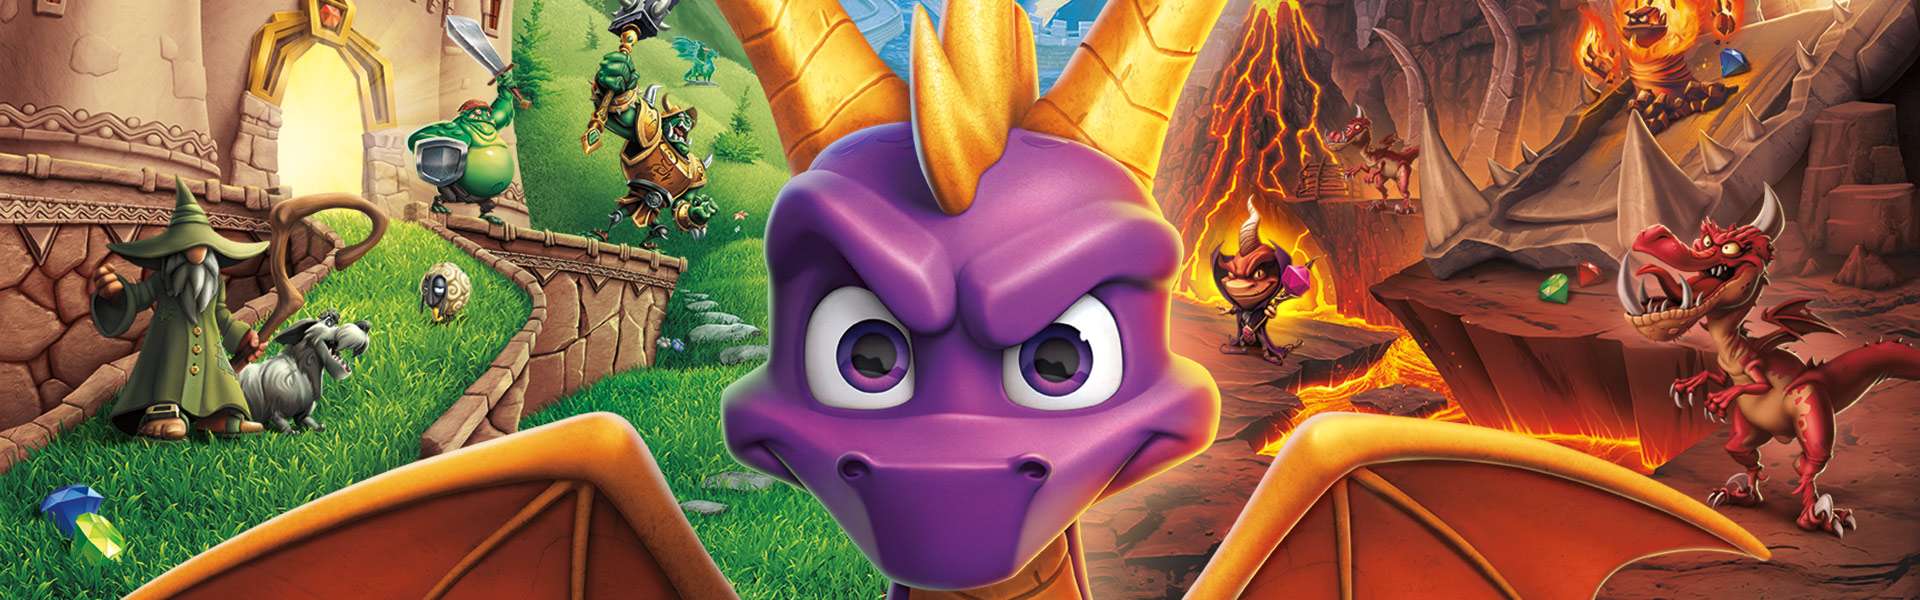 Spyro Reignited Trilogy – Spyro stands in front of cave entrance